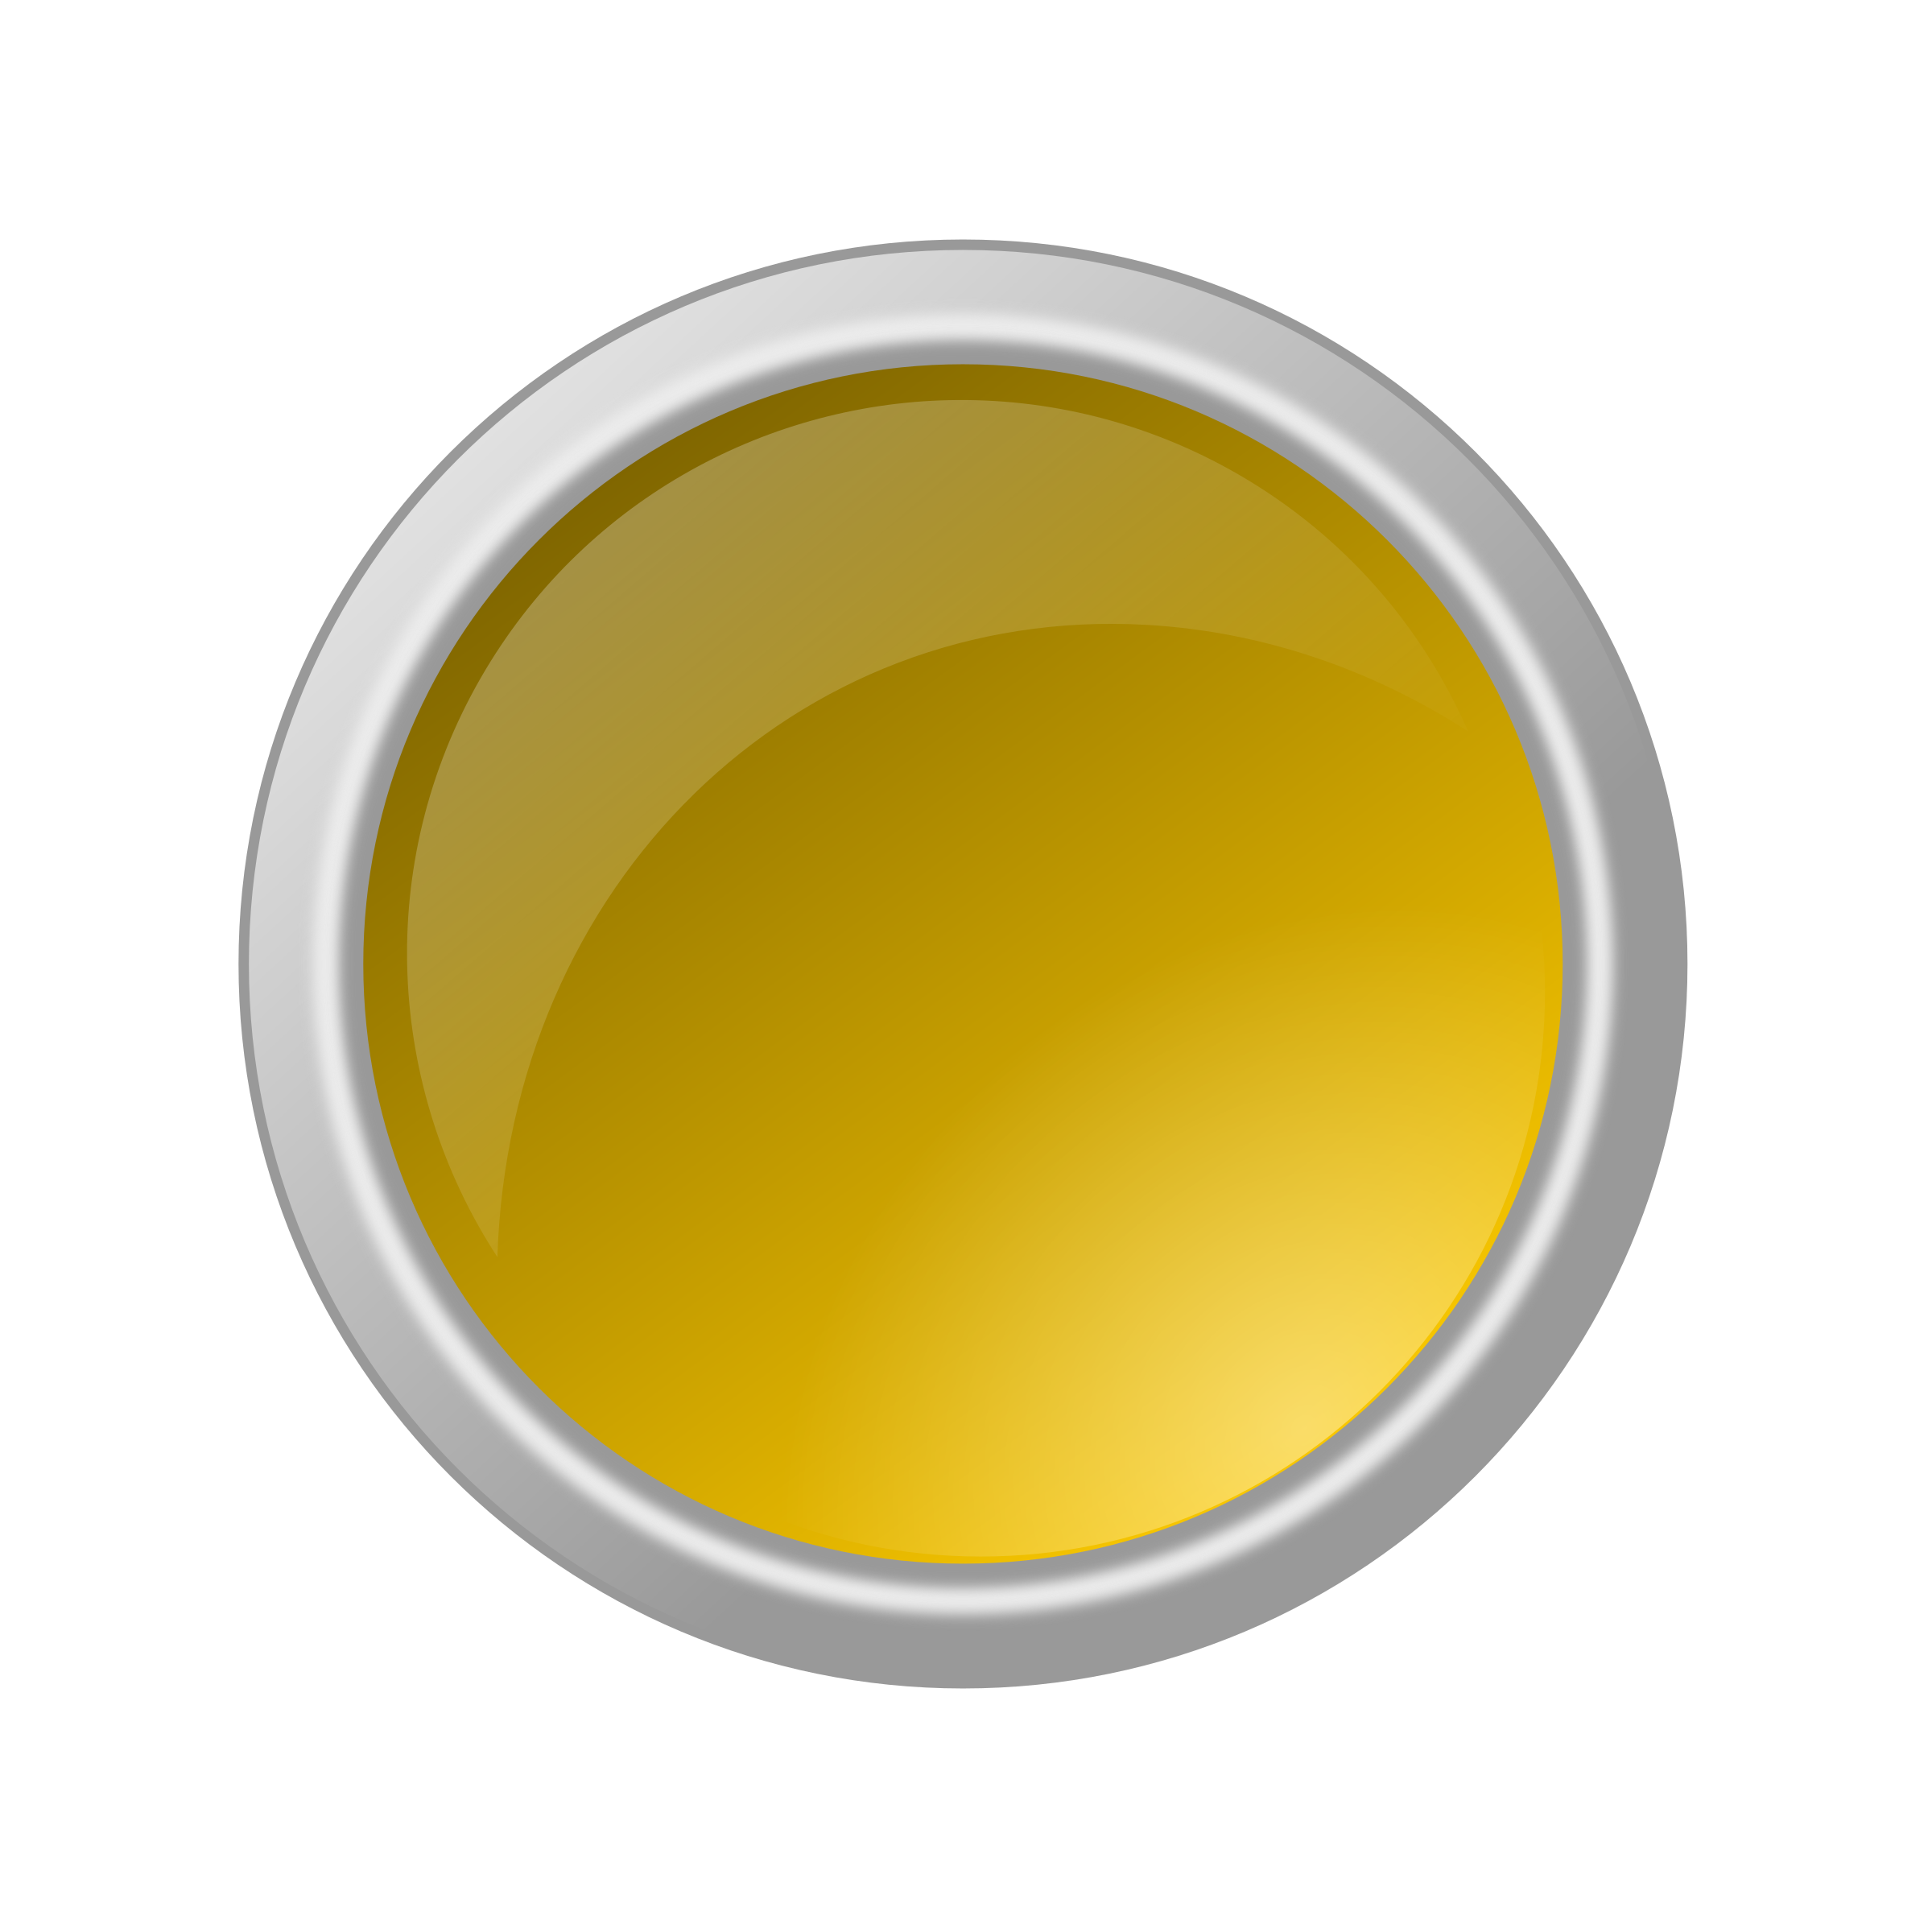 Button clipart yellow button. Glossy big image png